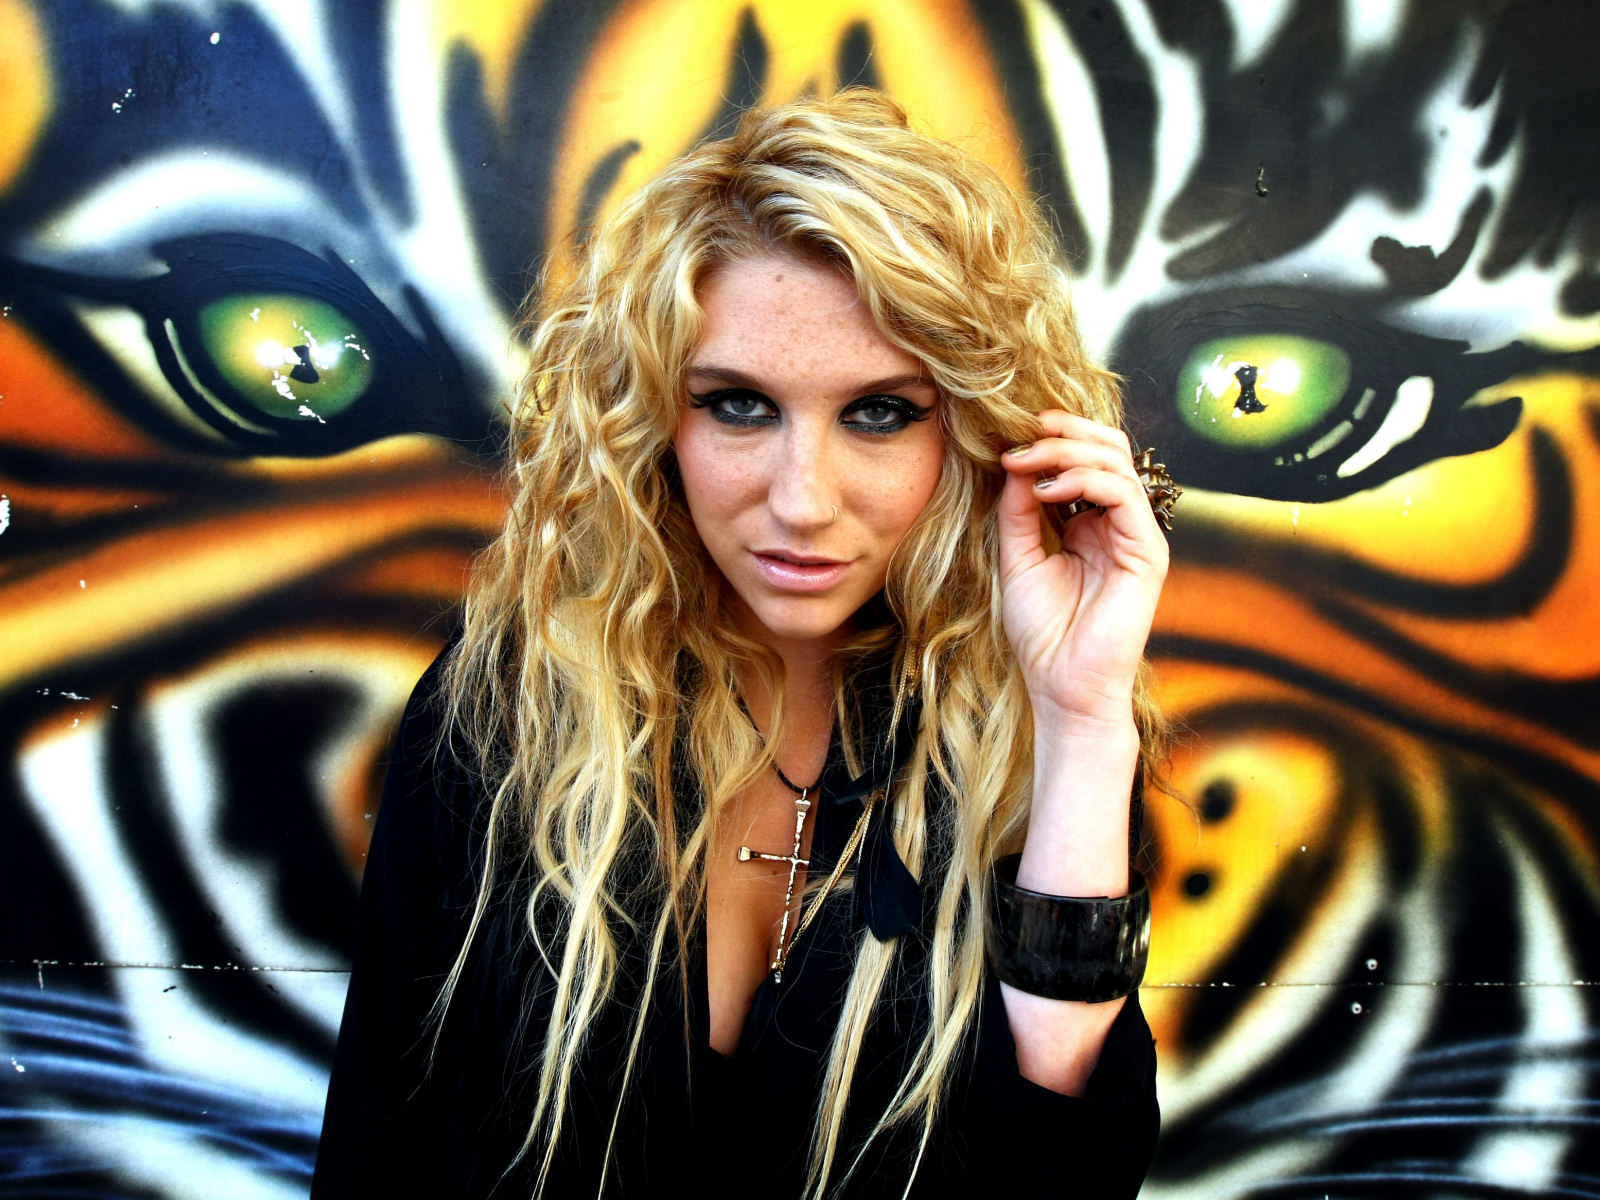 HD Kesha Wallpaper High Definition Wallpapers Stock 1600x1200